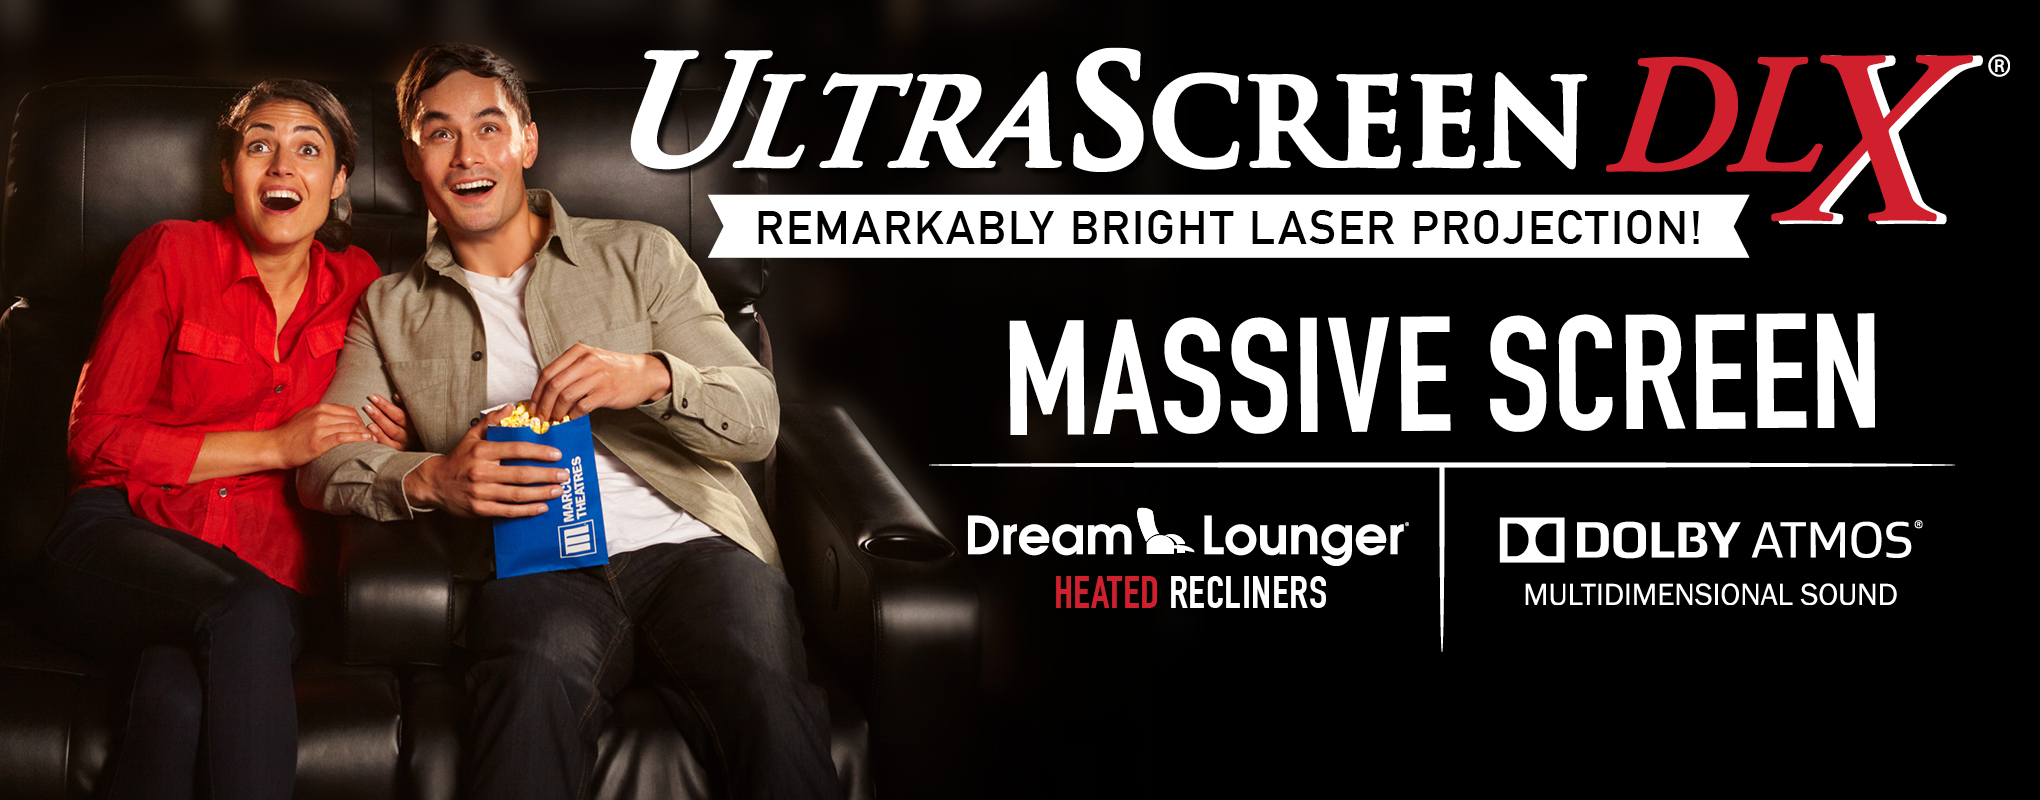 UltraScreen DLX® + Laser Projection